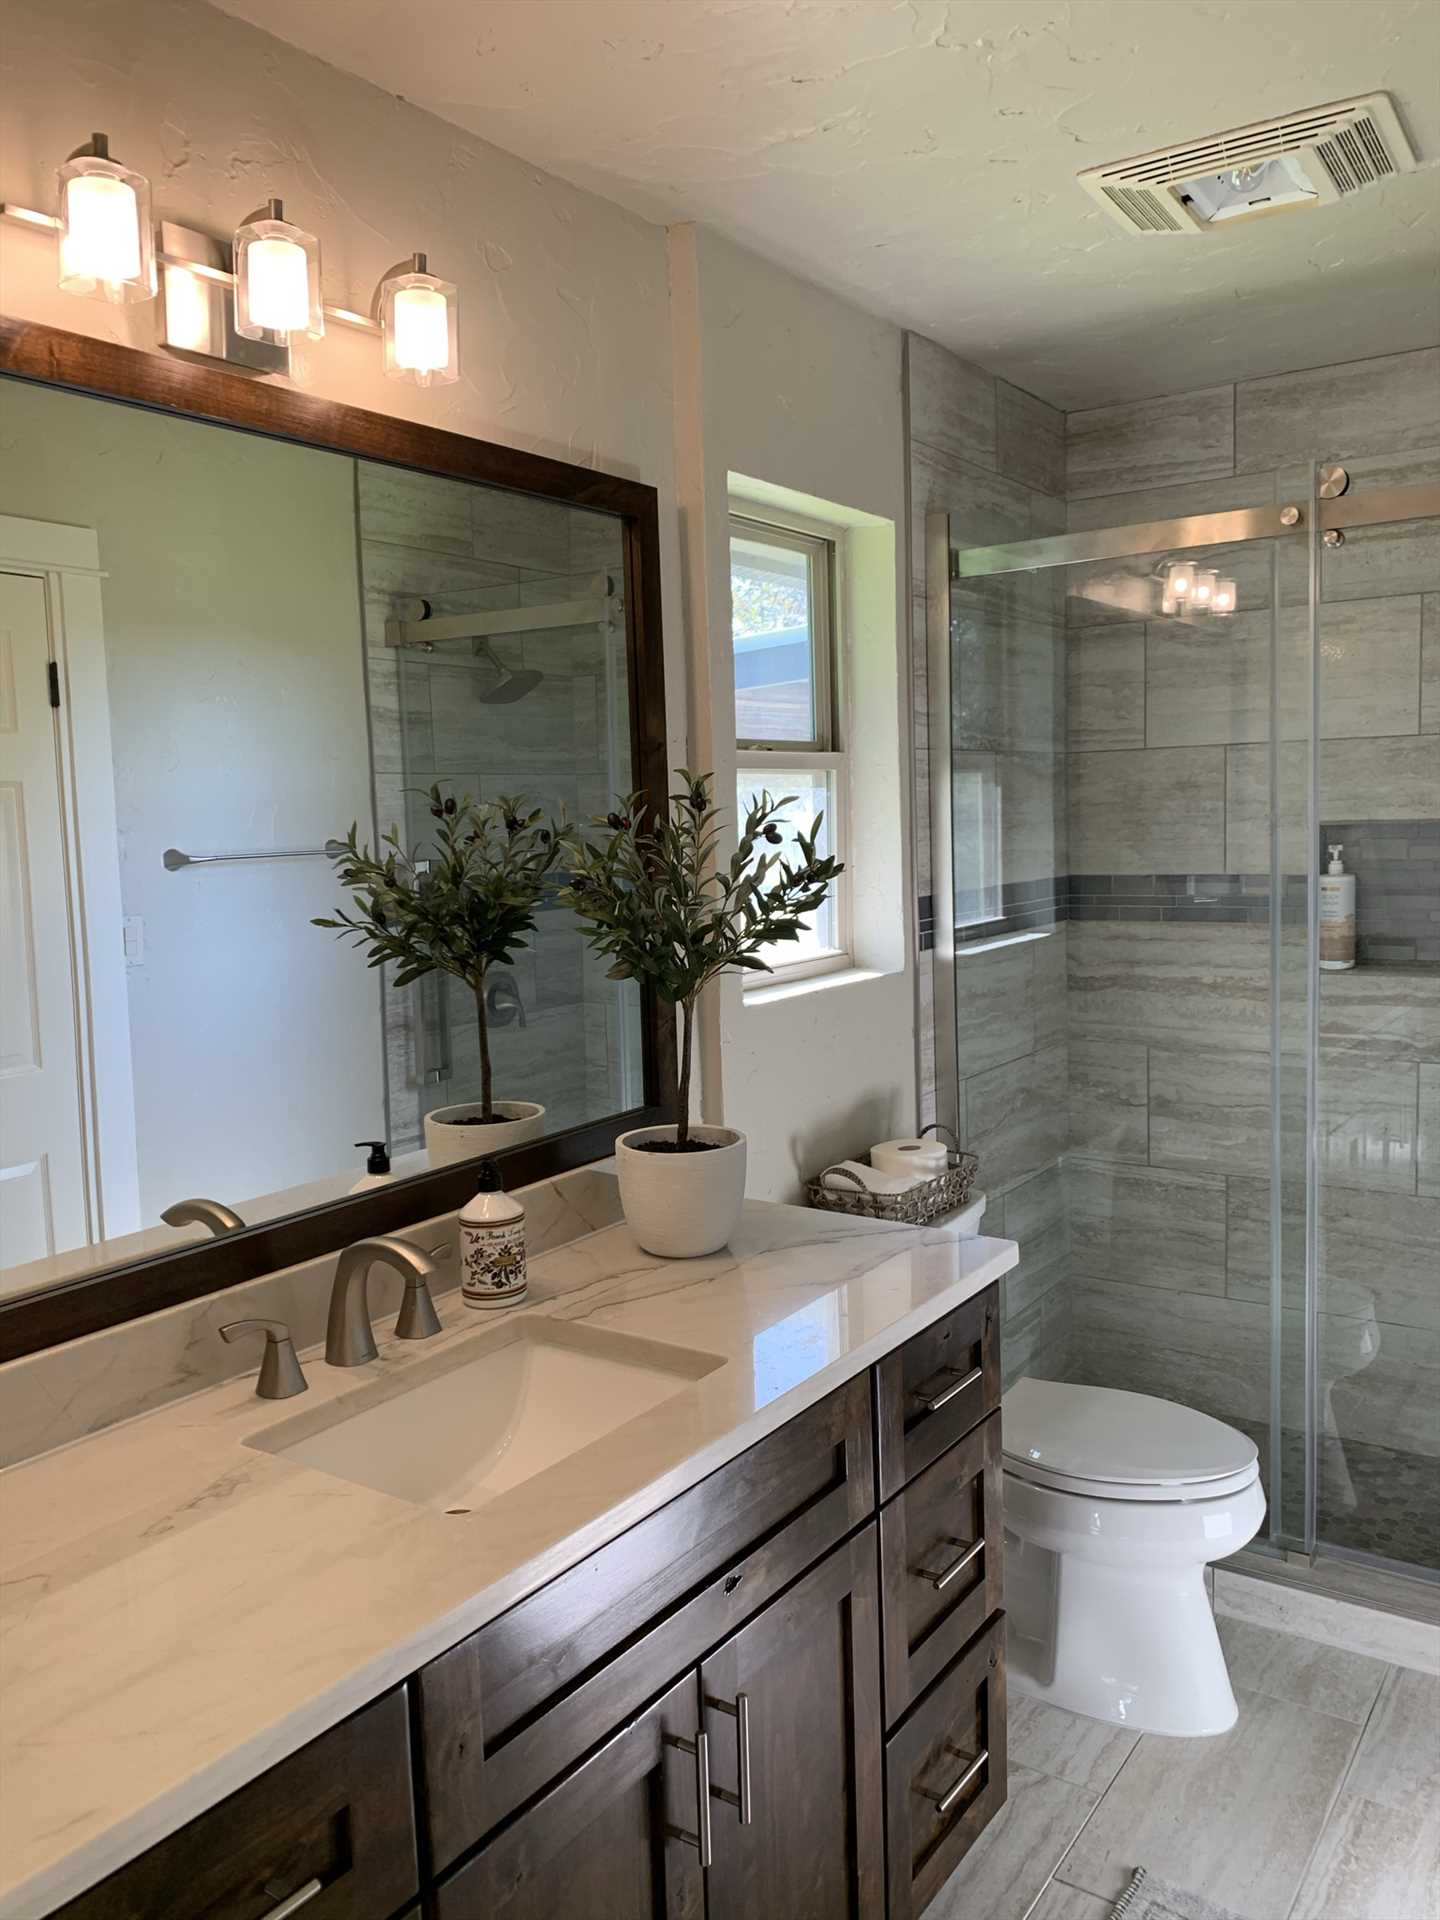 A roomy glass-walled shower and enormous mirrored vanity in the master bath also come with plenty of clean towels and linens. For added convenience, there's a washer and dryer here, too.